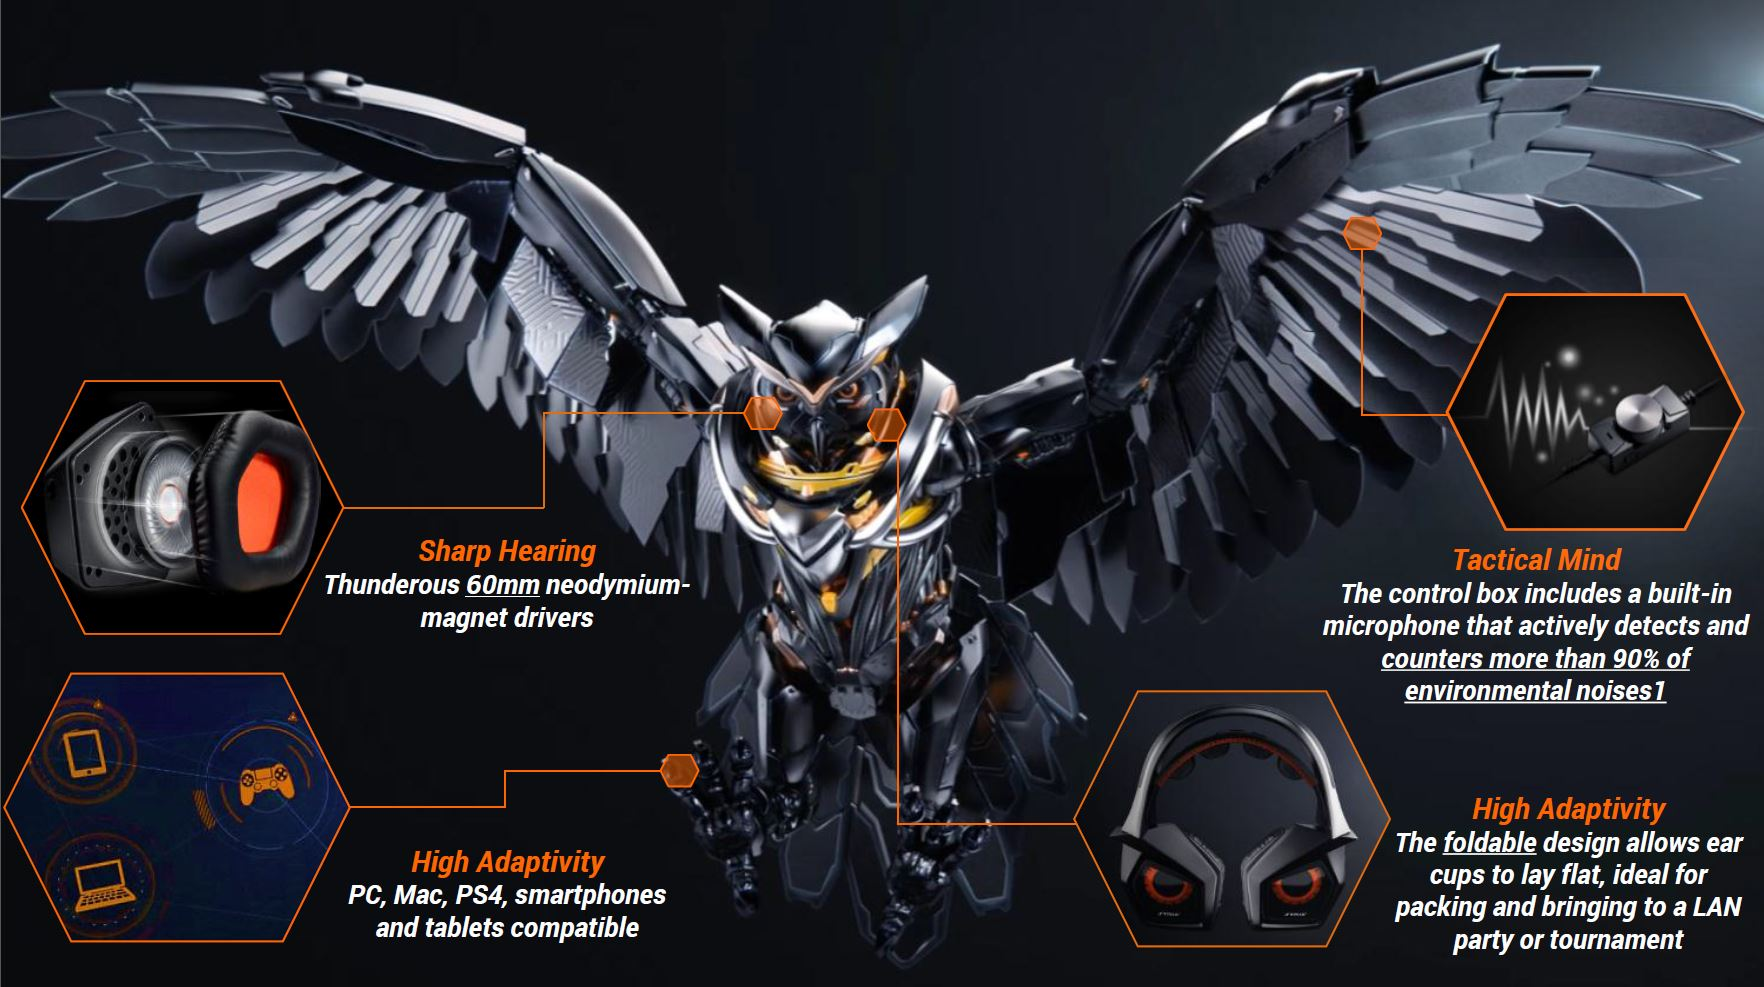 ASUS Announces New Strix Brand Republic Of Gamers ROG Republic Of Gamers Global